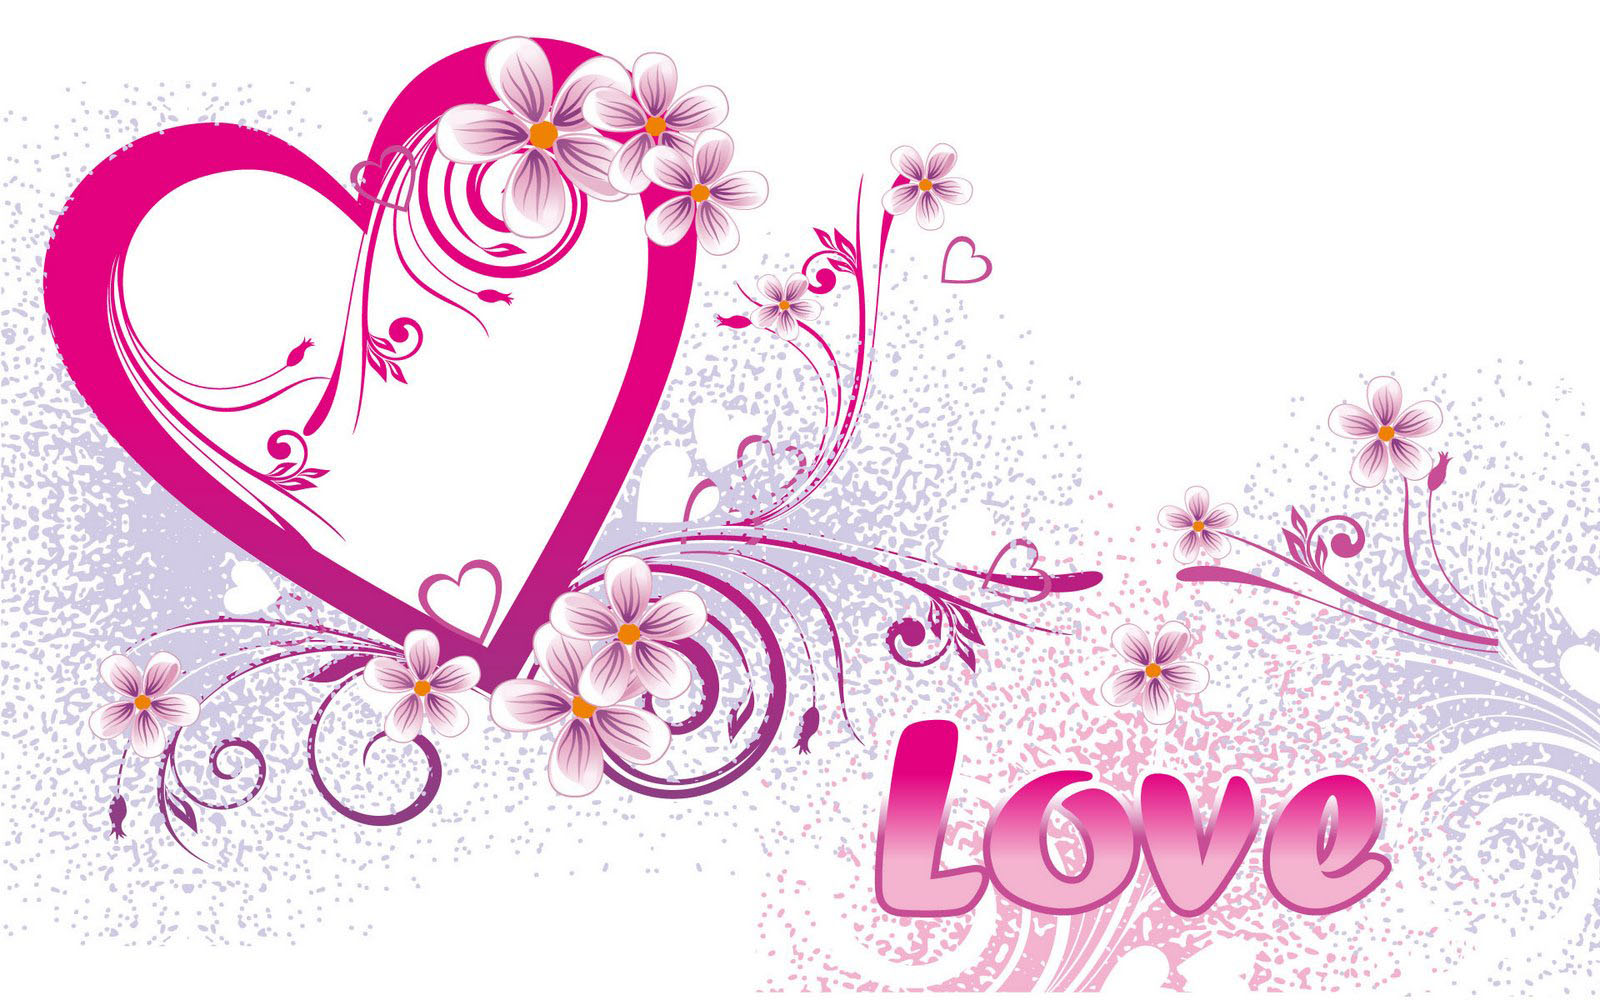 Love Wallpaper New : wallpapers: New Love Wallpapers